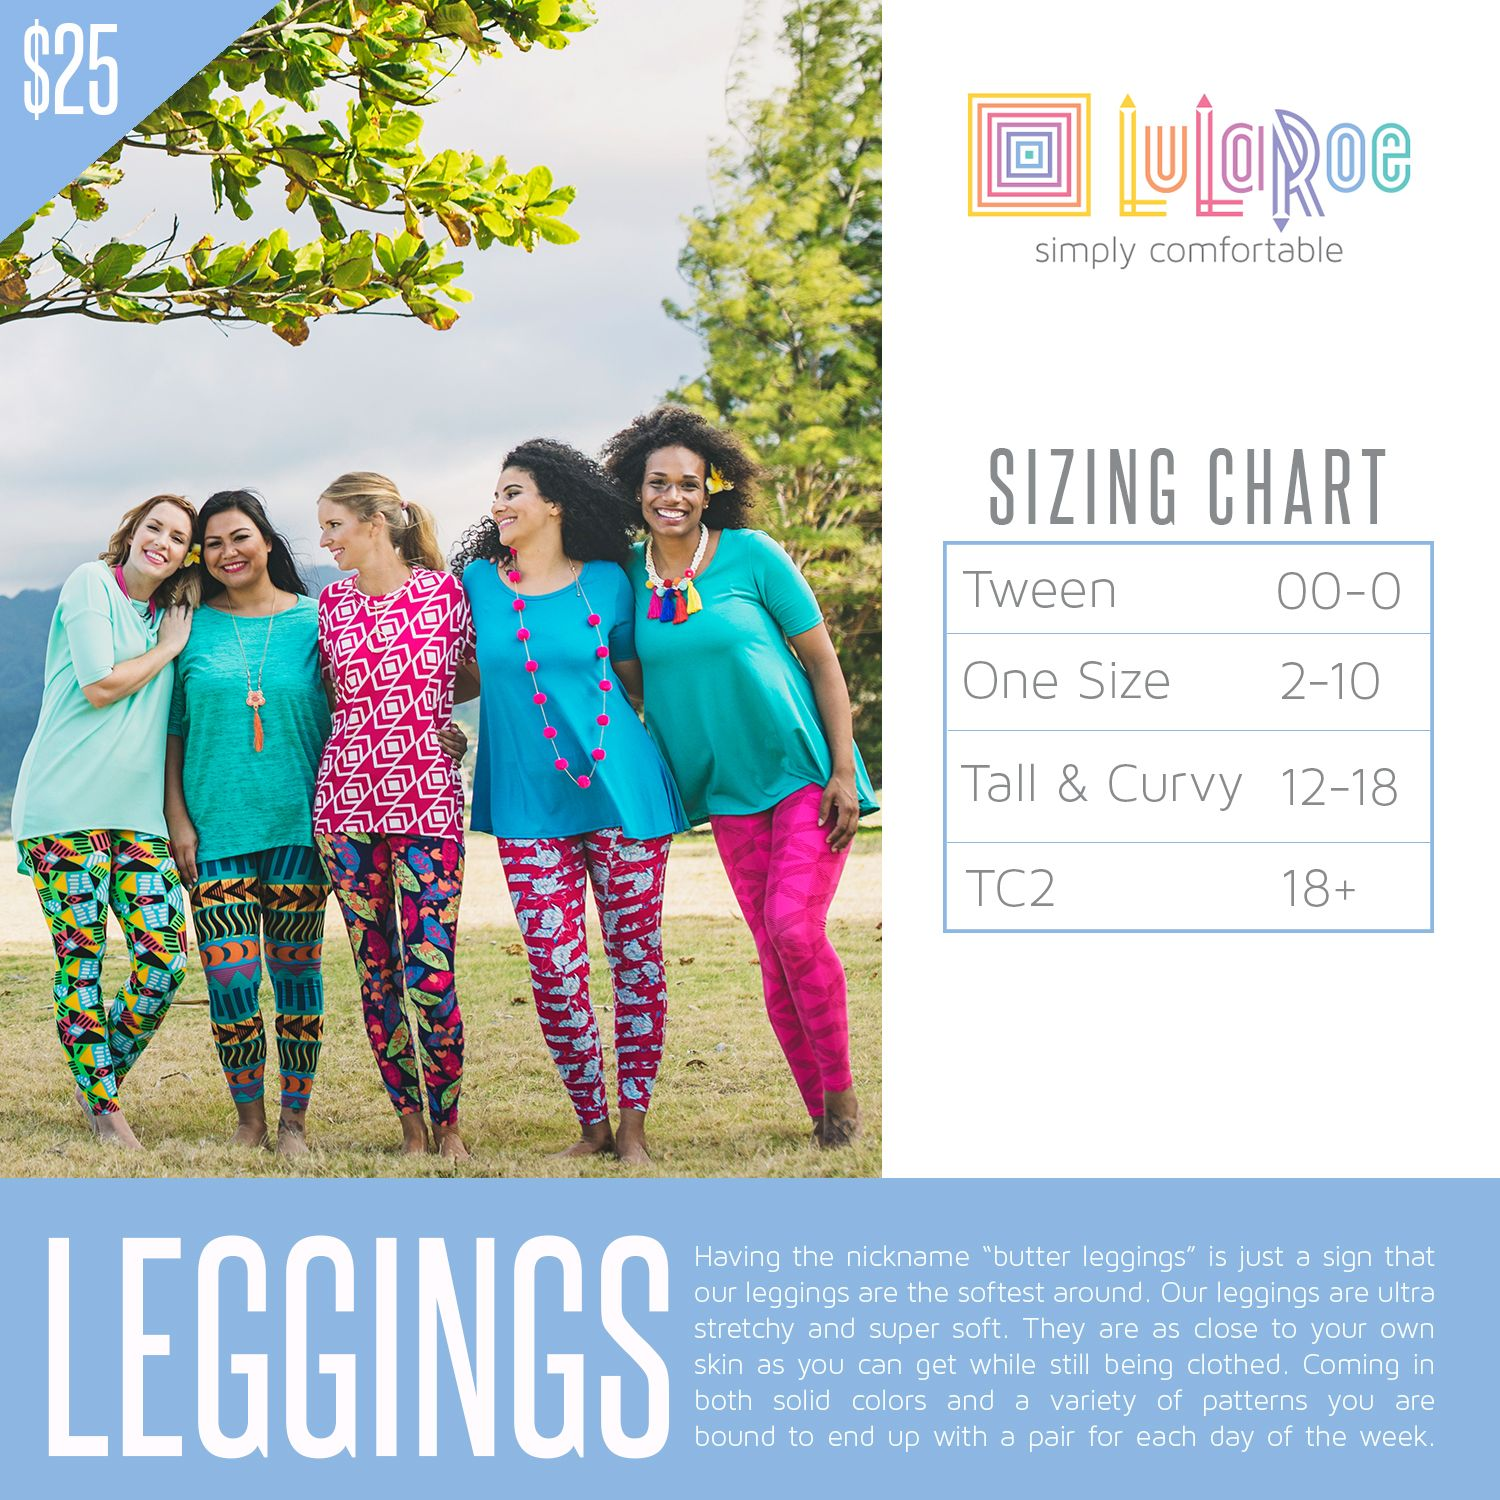 e2f8eba4e3207d Check out this size chart for LuLaRoe Leggings, including TC2! If you need  any help with your LuLaRoe sizing, you can connect with me at  www.shopwithrandi. ...